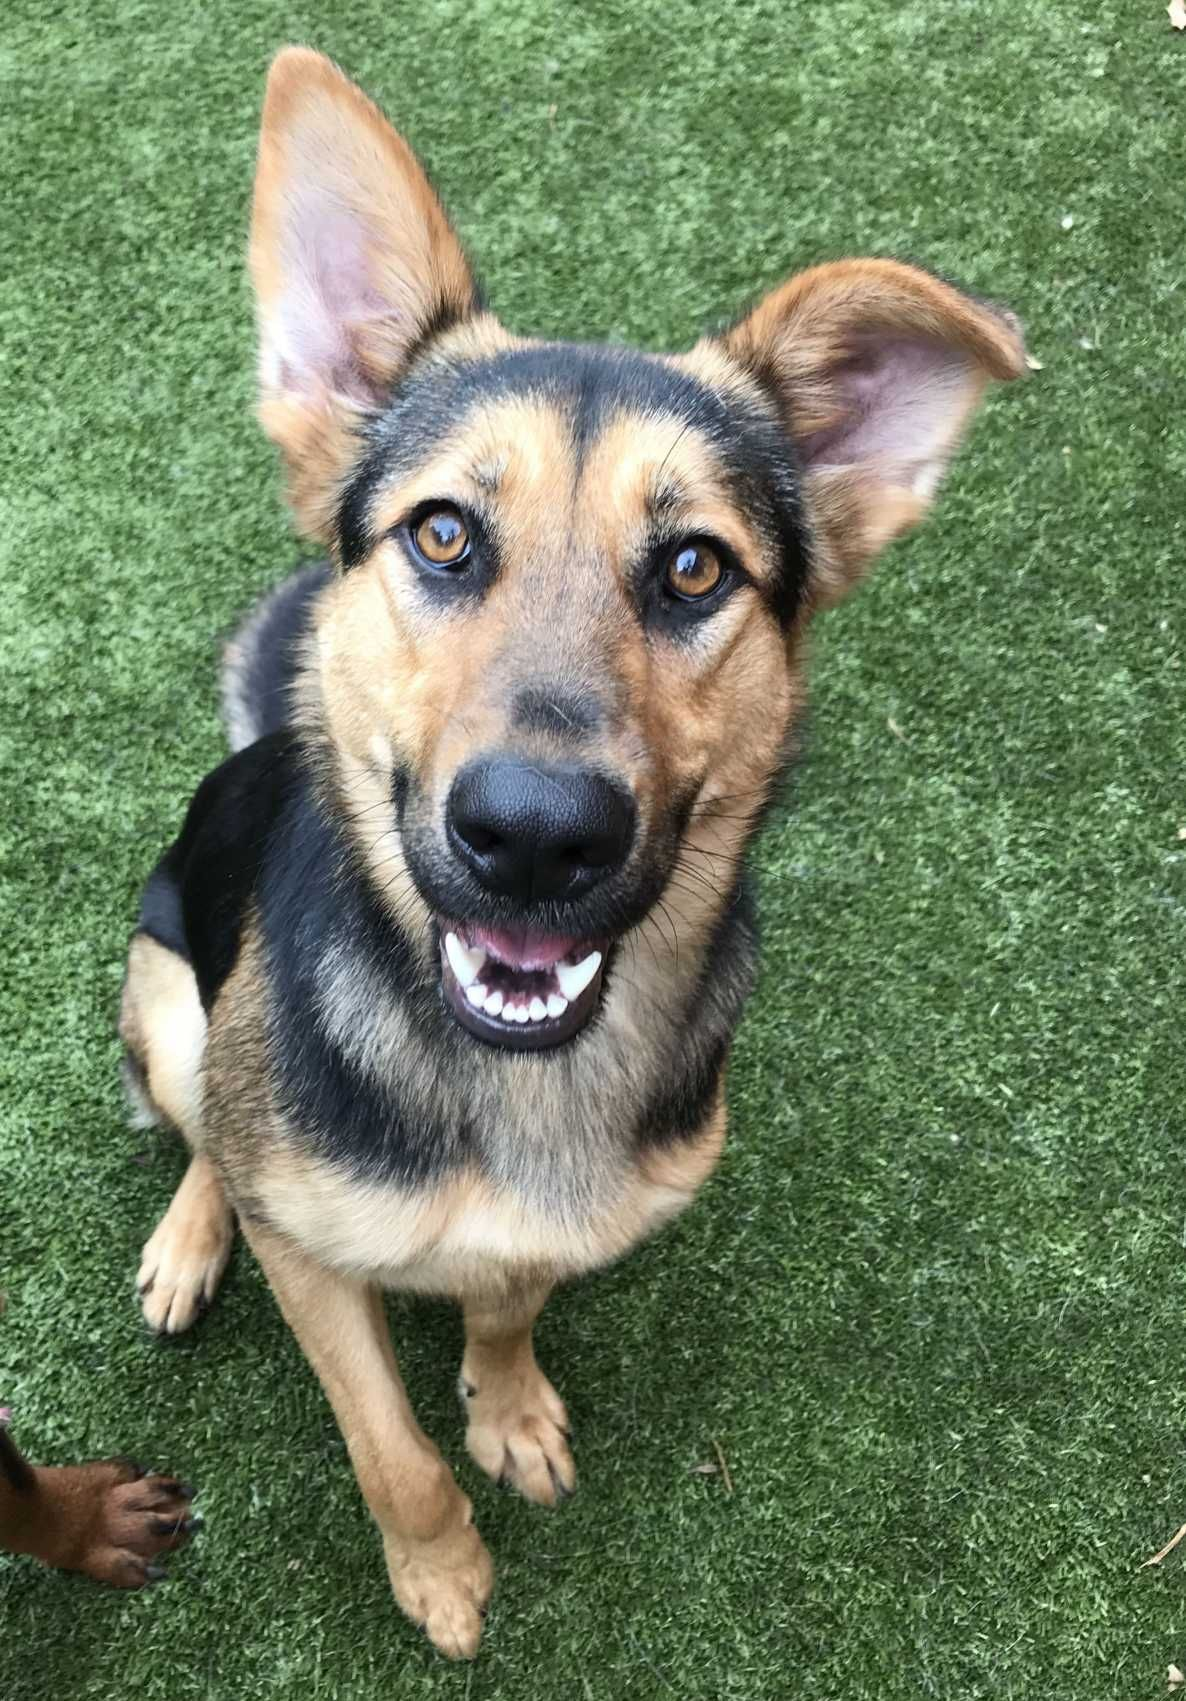 Adrian Is An Adoptable German Shepherd Dog Searching For A Forever